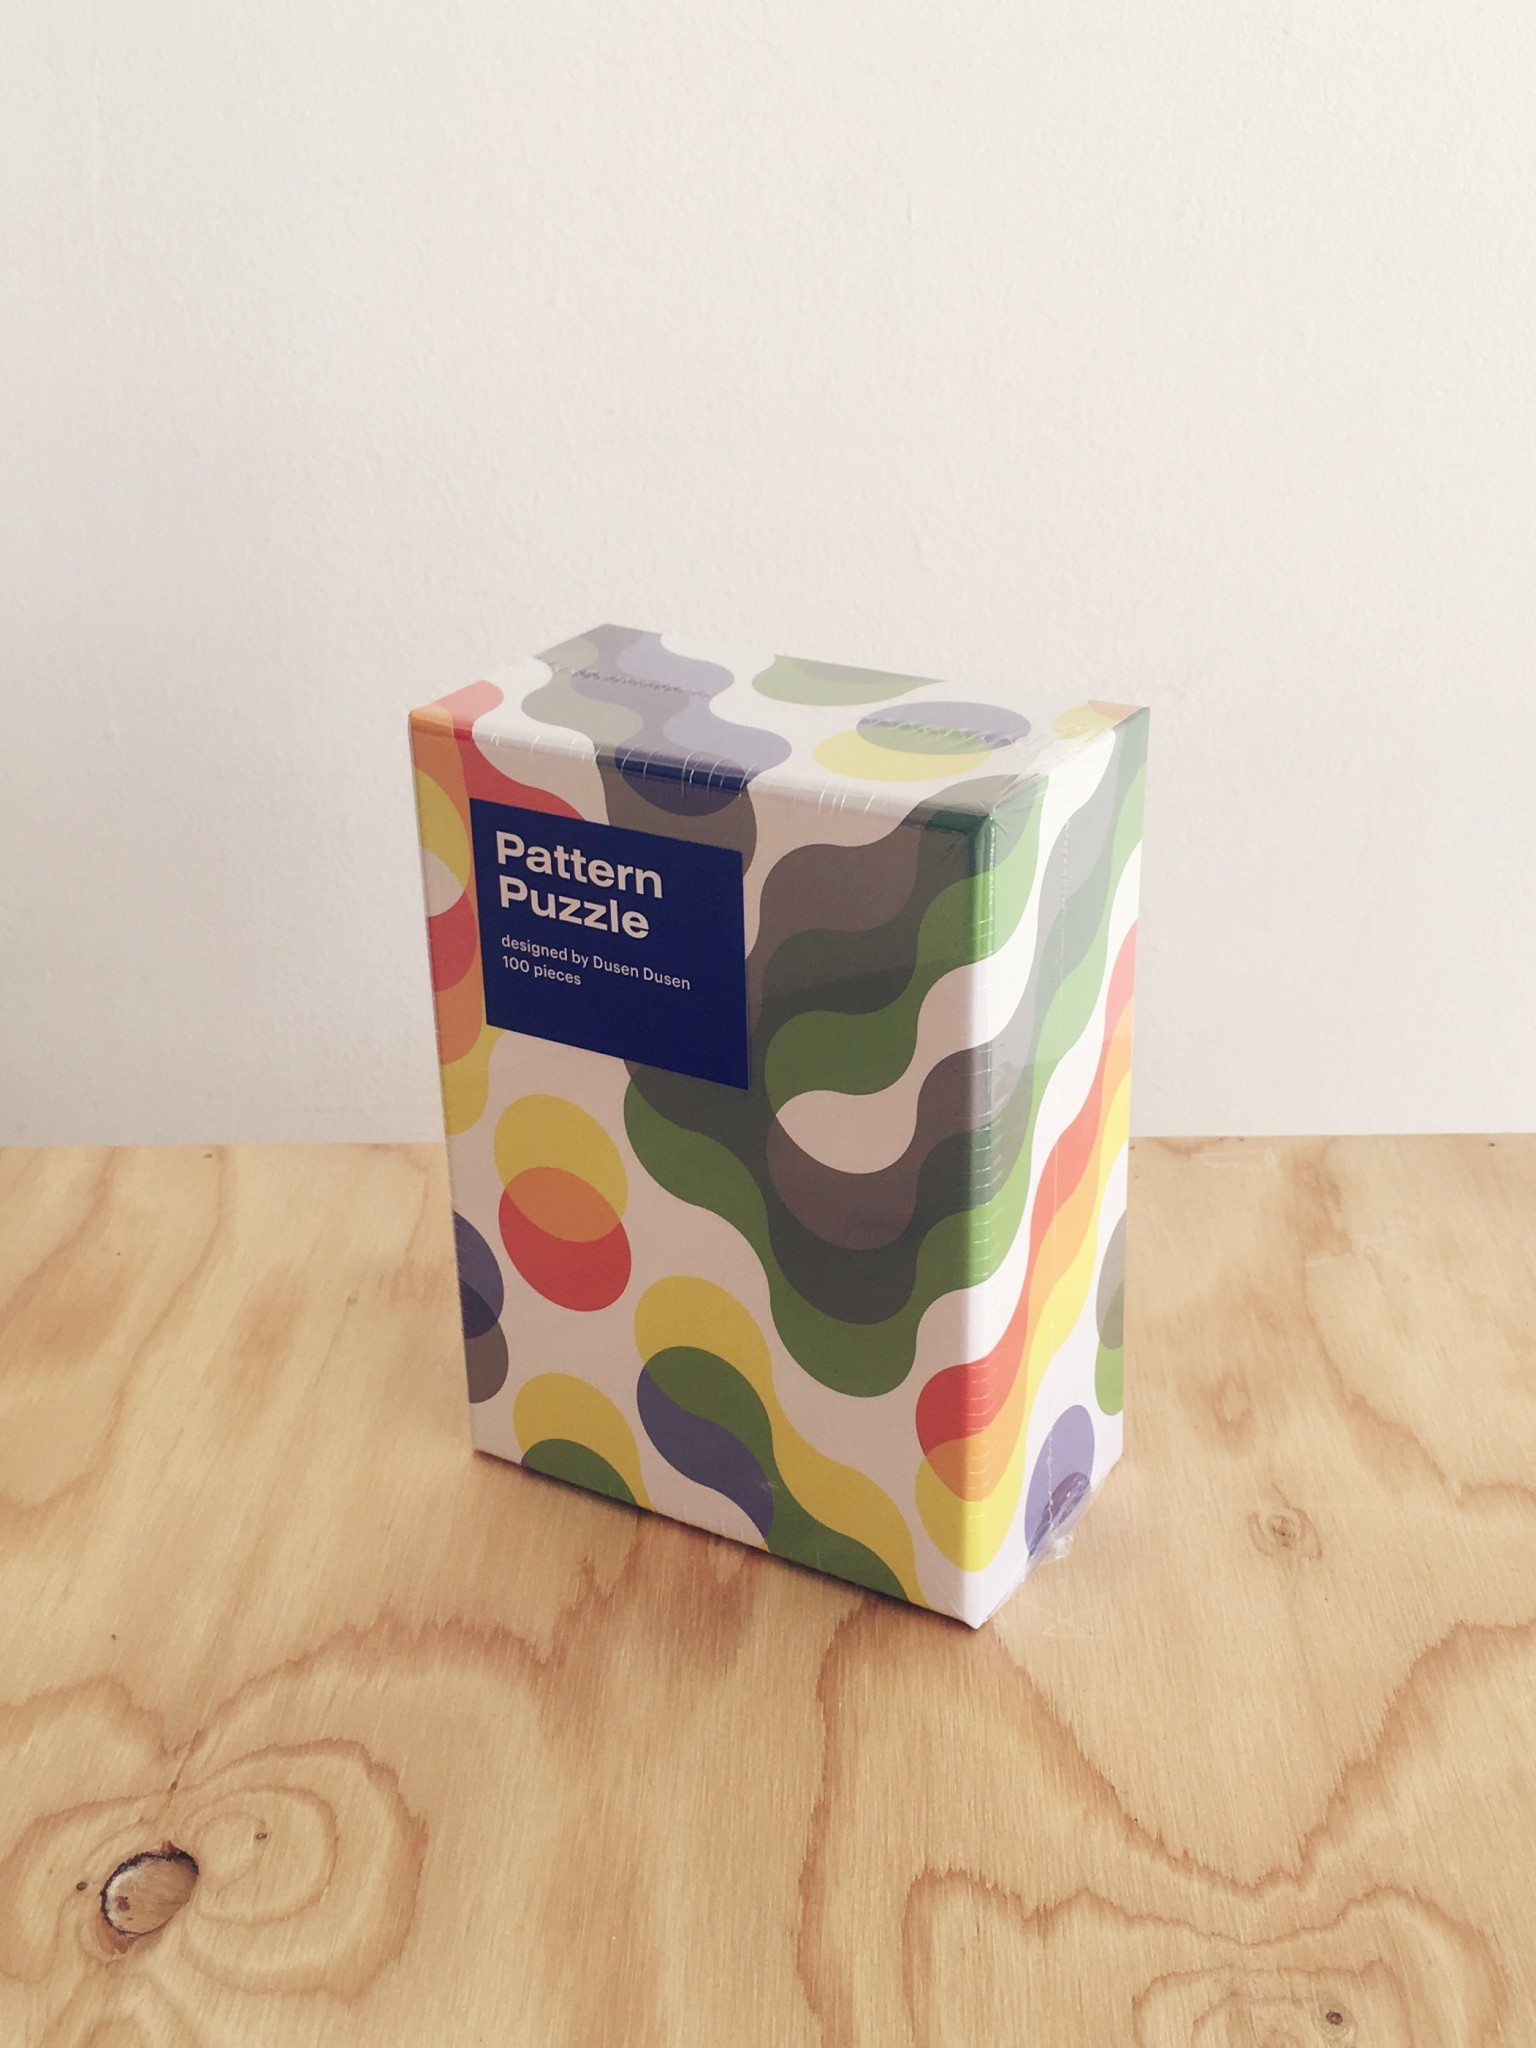 Areaware Small Dusen Dusen Pattern Puzzle